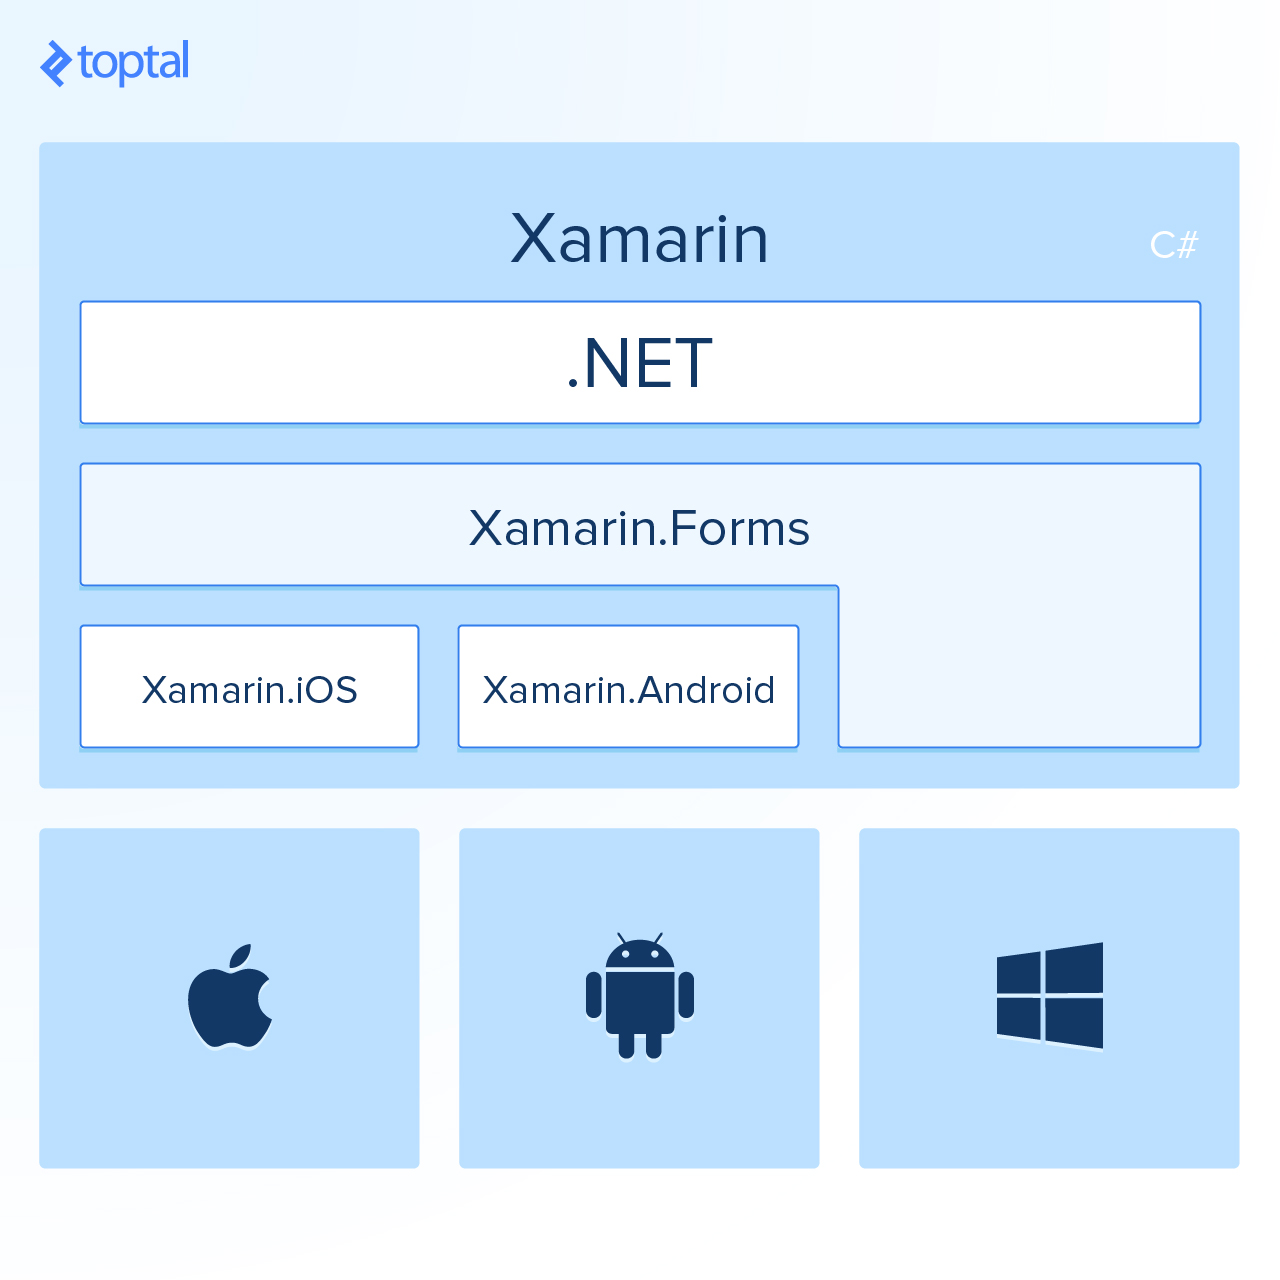 Building Cross-platform Apps with Xamarin: Perspective of an Android Developer - Image 2